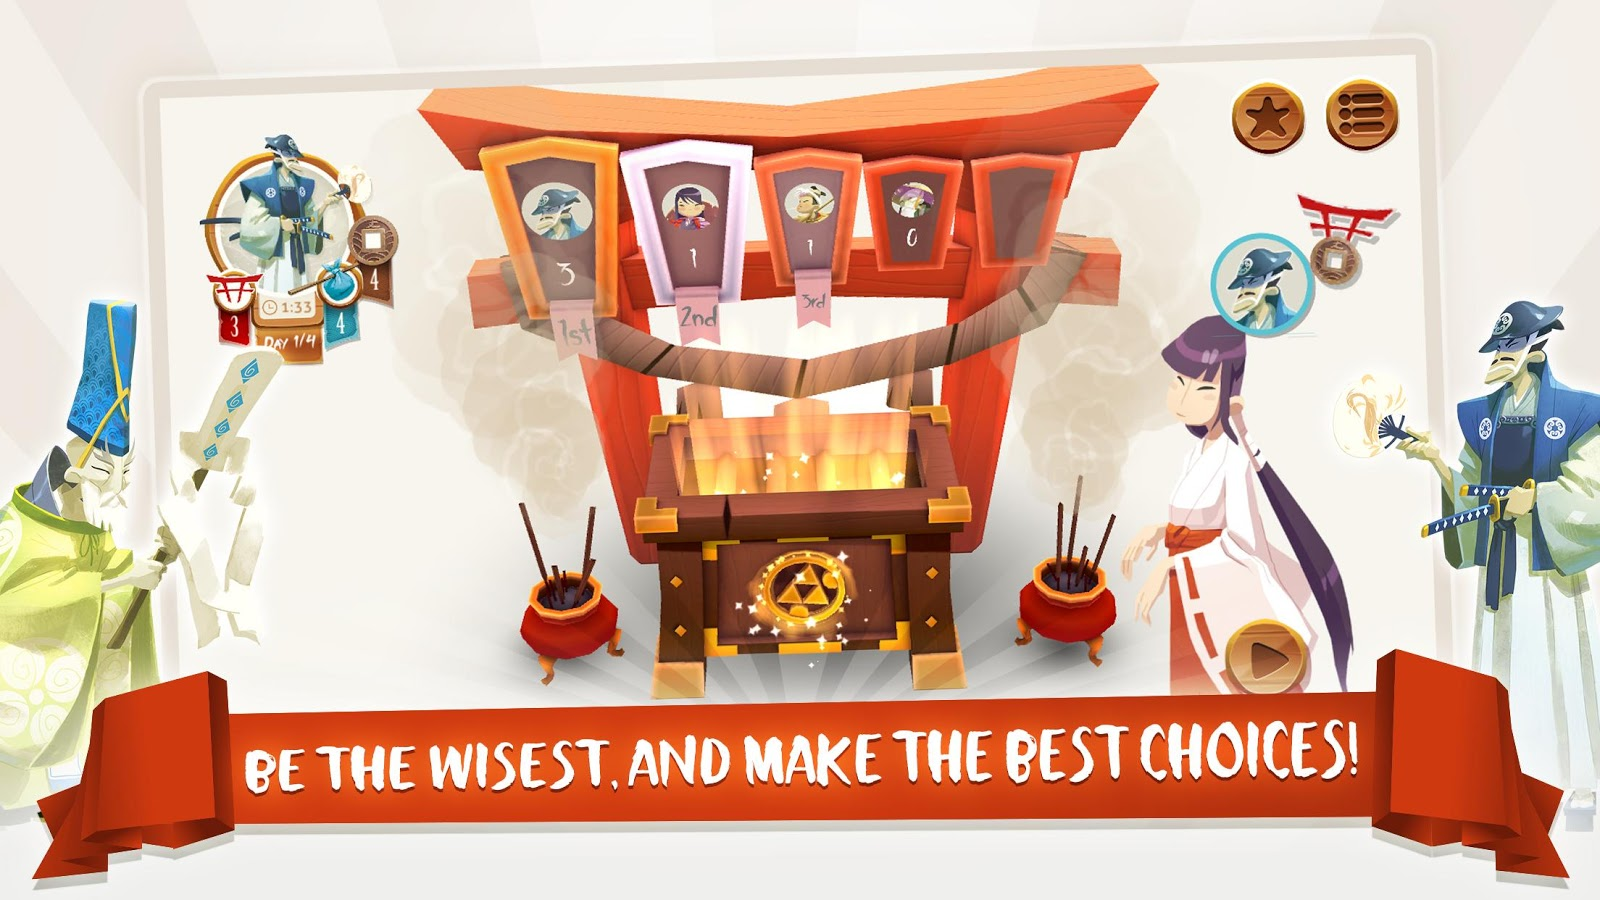 Tokaido: A Fun Strategy Game Screenshot 2